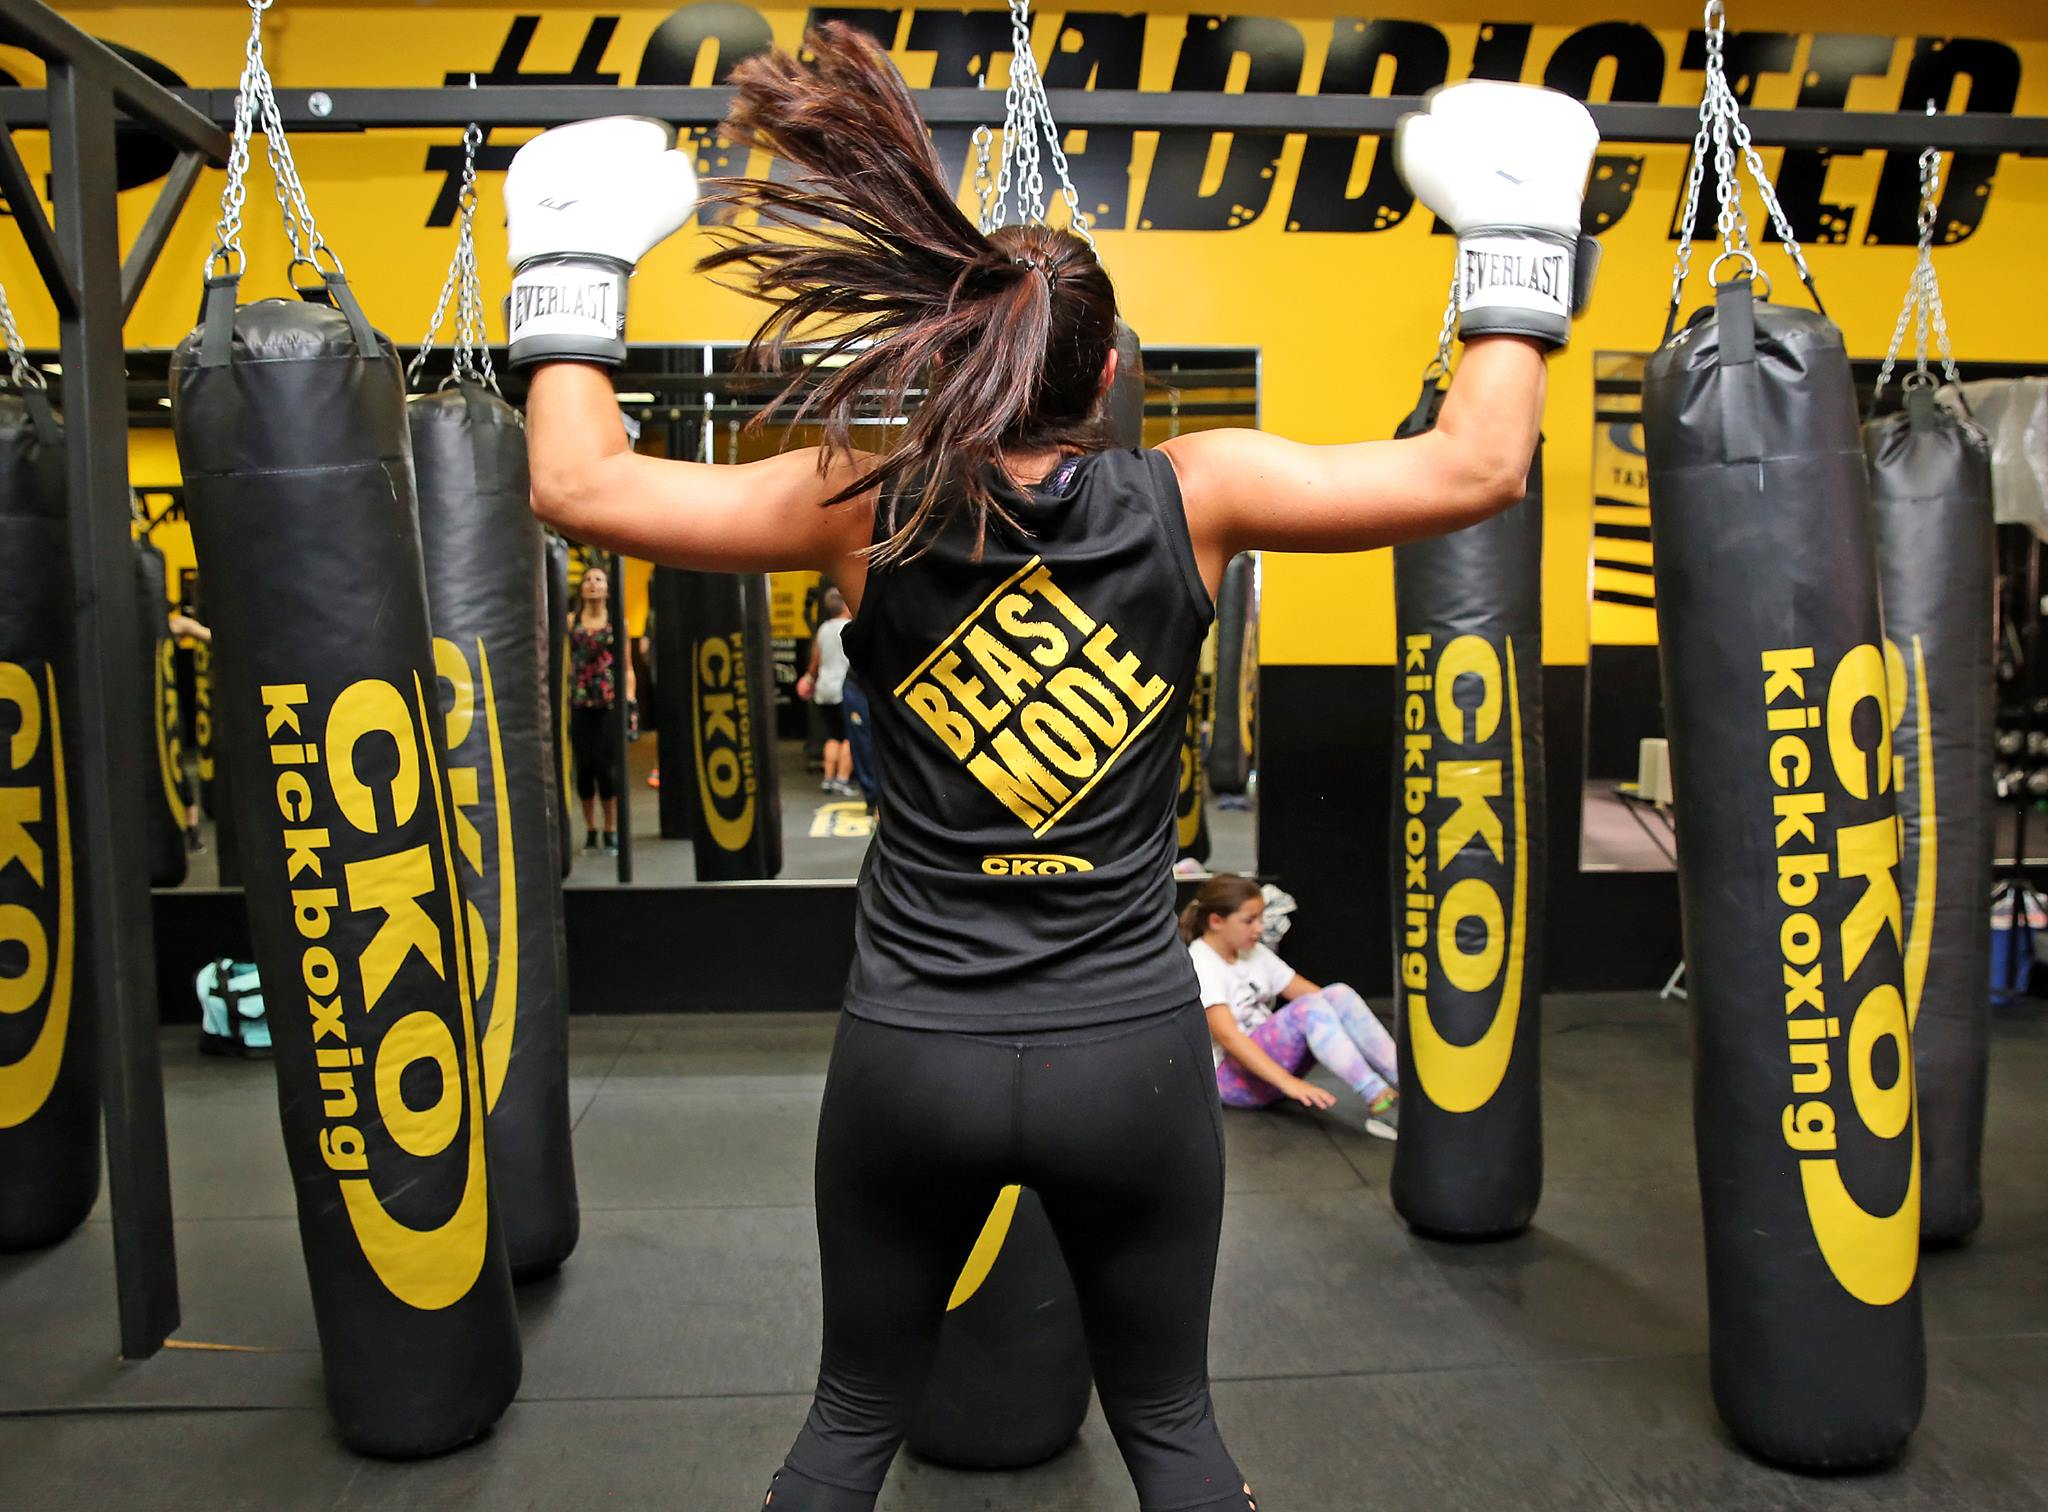 CKO Kickboxing - at CKO Kickboxing, get ready to burn fat, reduce stress and tone up by punching and kicking real heavy bags. Fitness Kickboxing is the number one fat-burning, cardio exercise, with up to 1,200 calories burned during a one hour class.At CKO Kickboxing, REAL PEOPLE use REAL HEAVY BAGS to get REAL RESULTS.